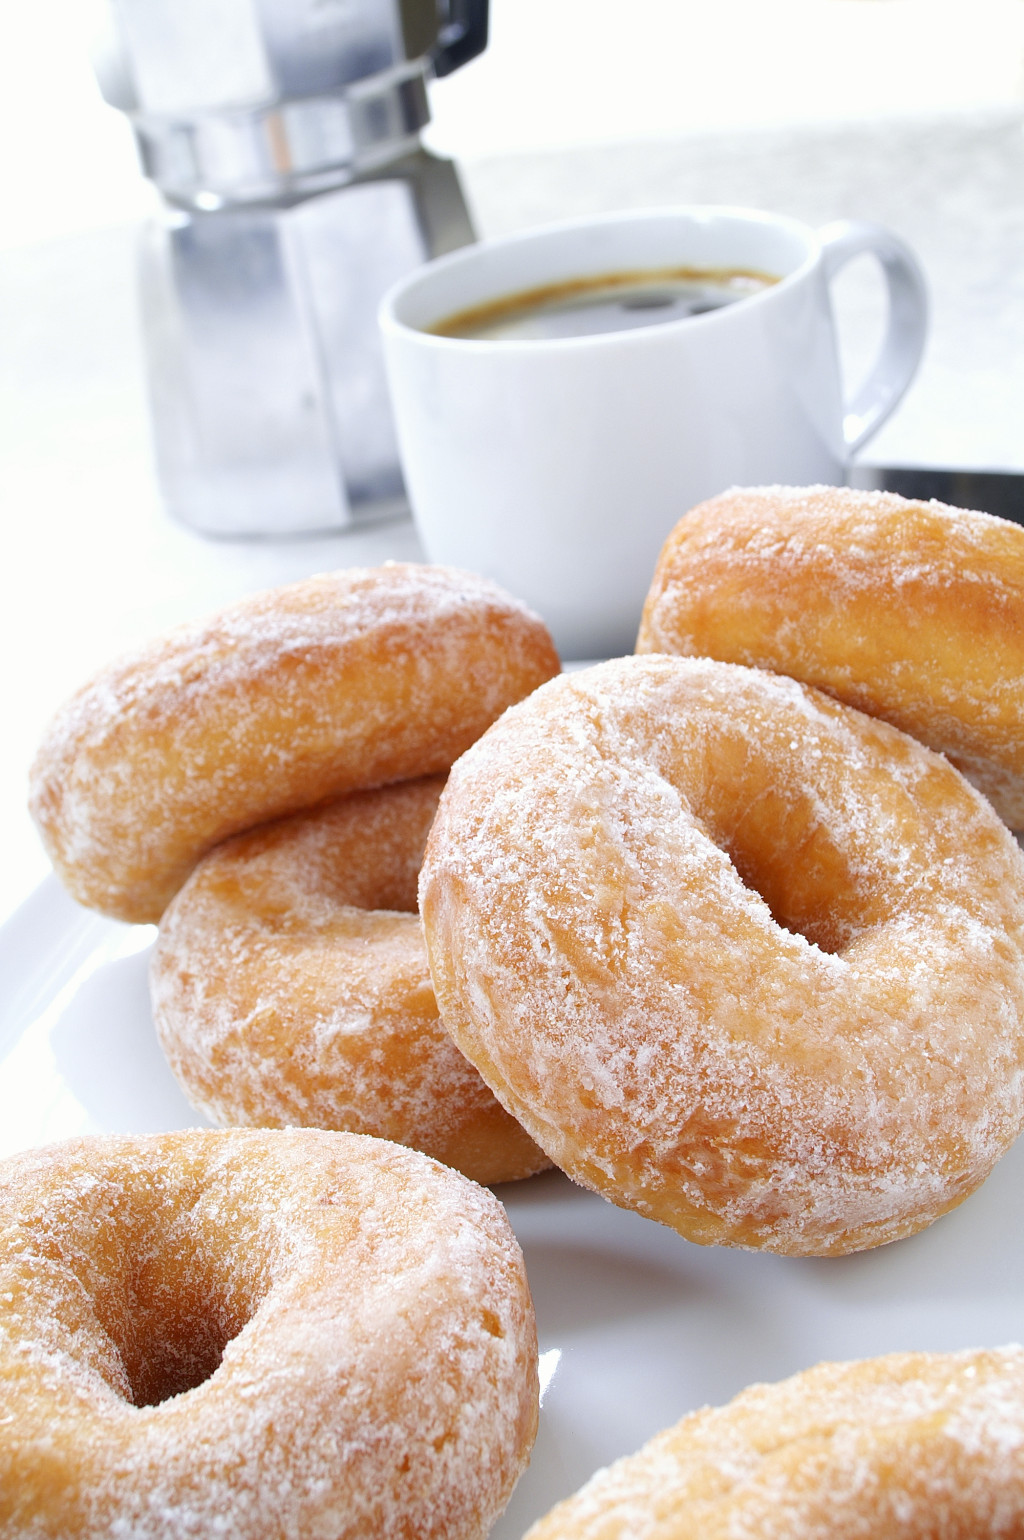 Easy Glazed Donut Recipe